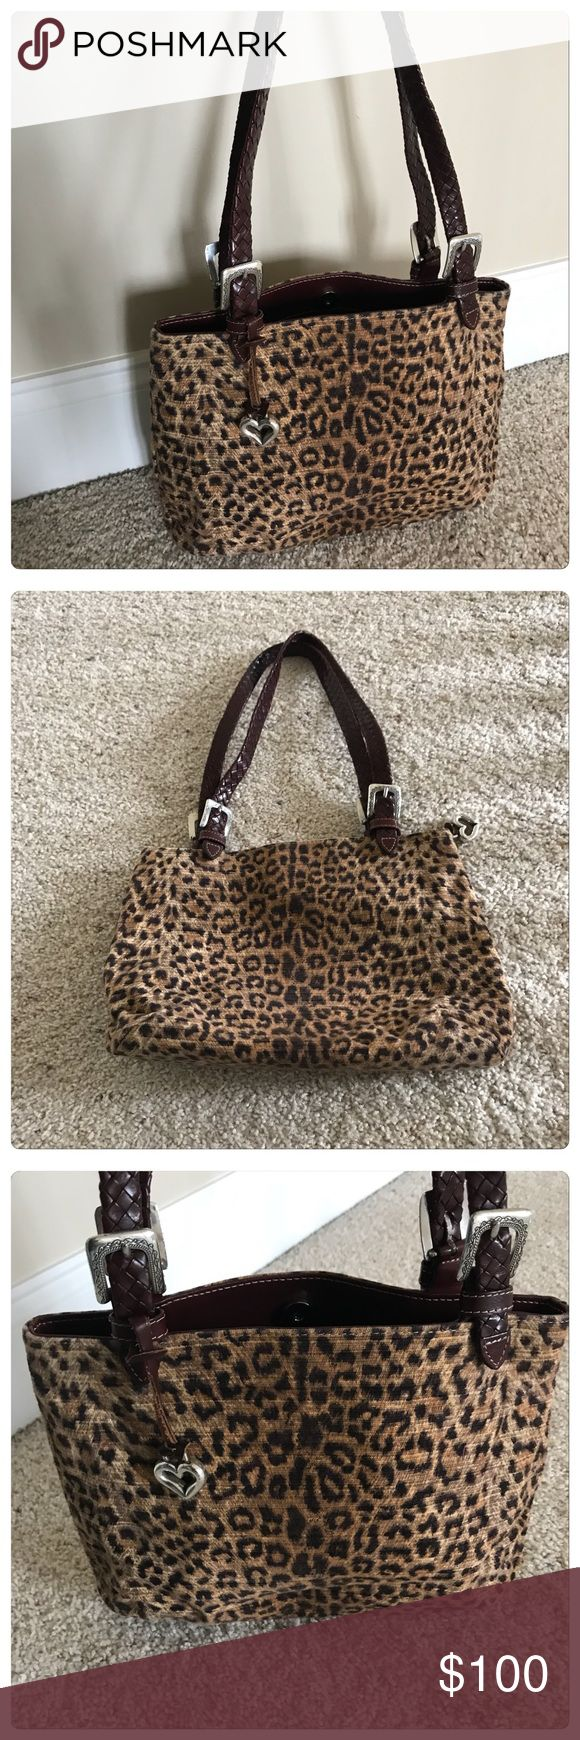 """NWOT, Brighton Cheetah Printed Purse! NWOT, Brighton Stunning Cheetah Printed Bag/Purse! Leopard/Cheetah Animal Print (Brown& Tan)Dark Brown Leather Braided Straps. Silver tone Heart Fob & Buckles. Inside side zip pockets, with center pouch. Top magnetic closure. Approx measurements: 13.5"""" L x 8.5"""" H x 5 """" D x 11"""" strap drop. Brand new in perfect condition. Comes with dust bag. No Trades Brighton Bags Shoulder Bags"""